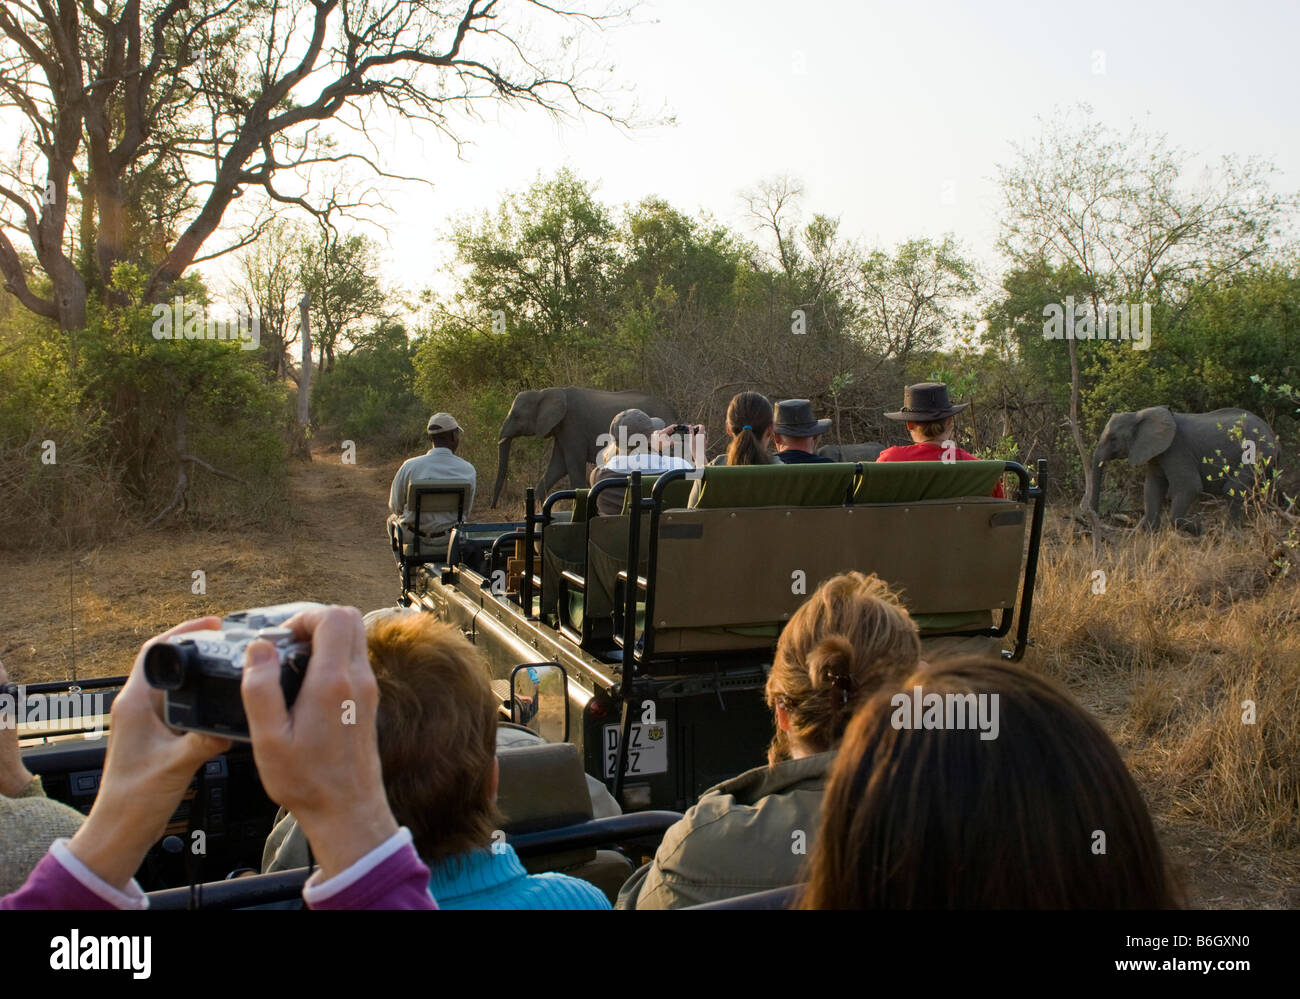 Game Drive Adventure South-Africa Jeep Vehicle People